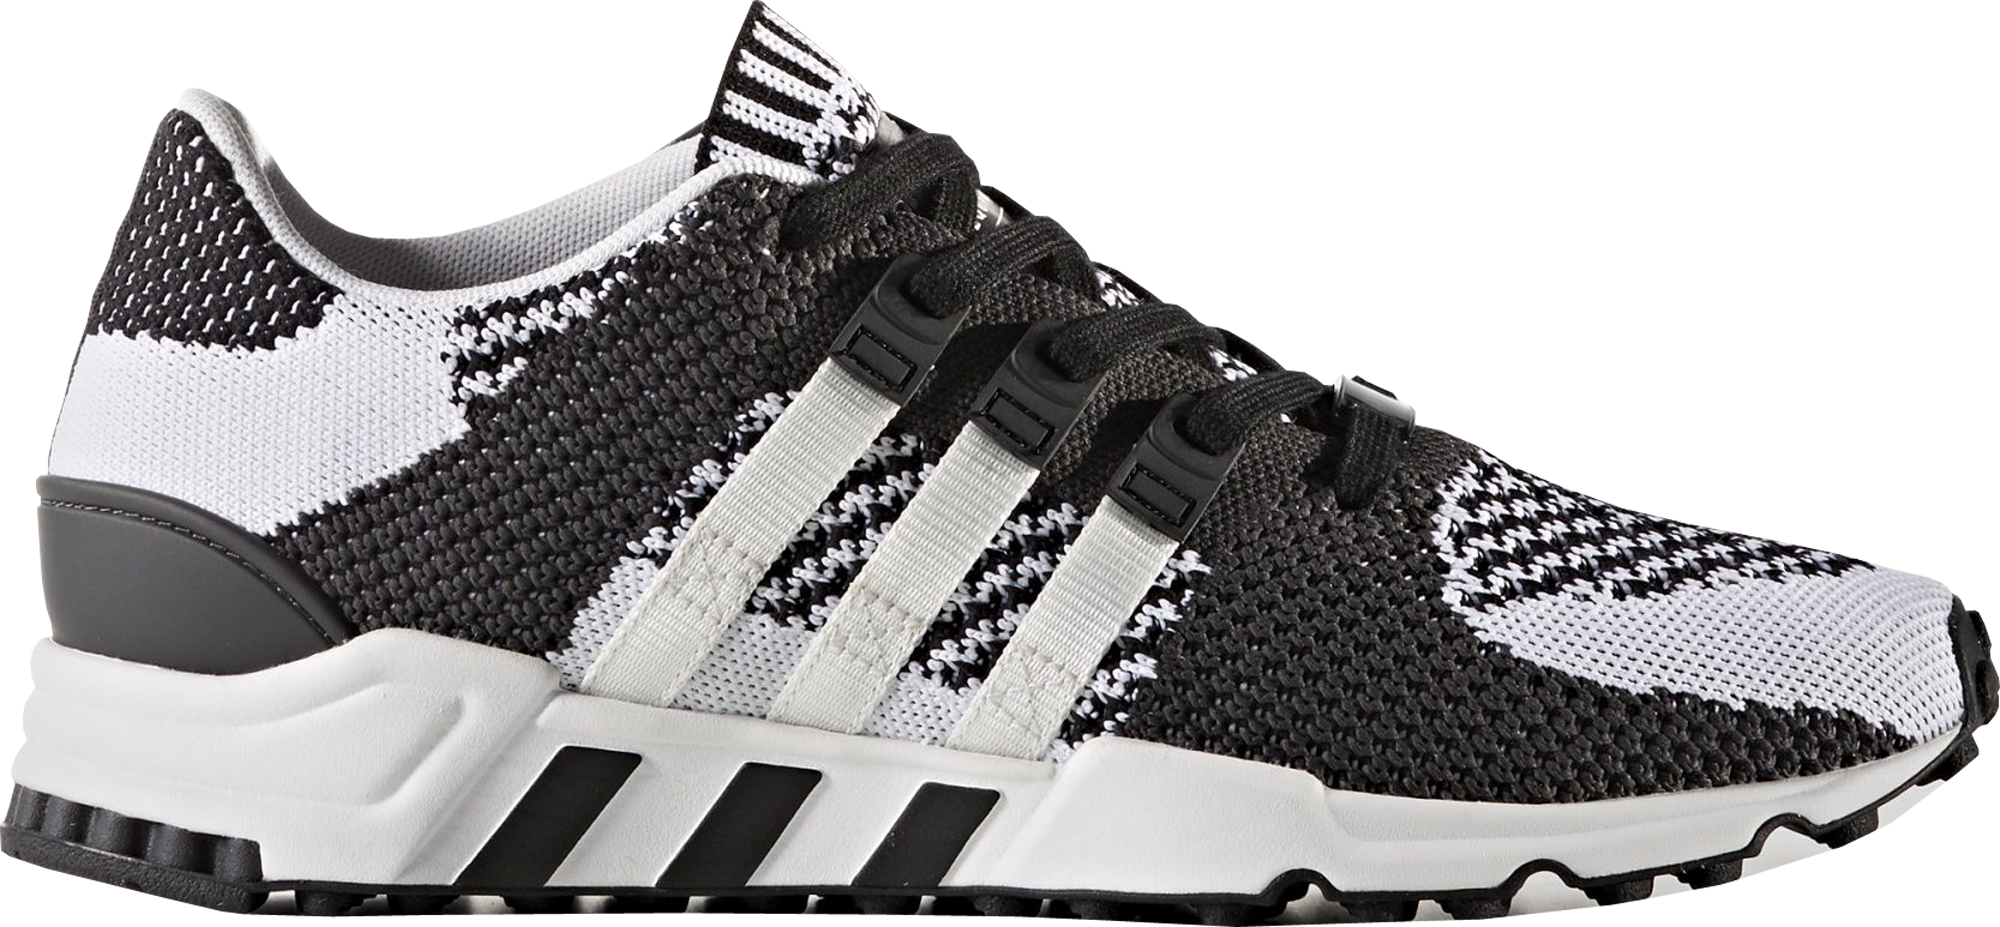 Stockx Primeknit Eqt Support White Rf News Adidas Black ZPluTkiwOX